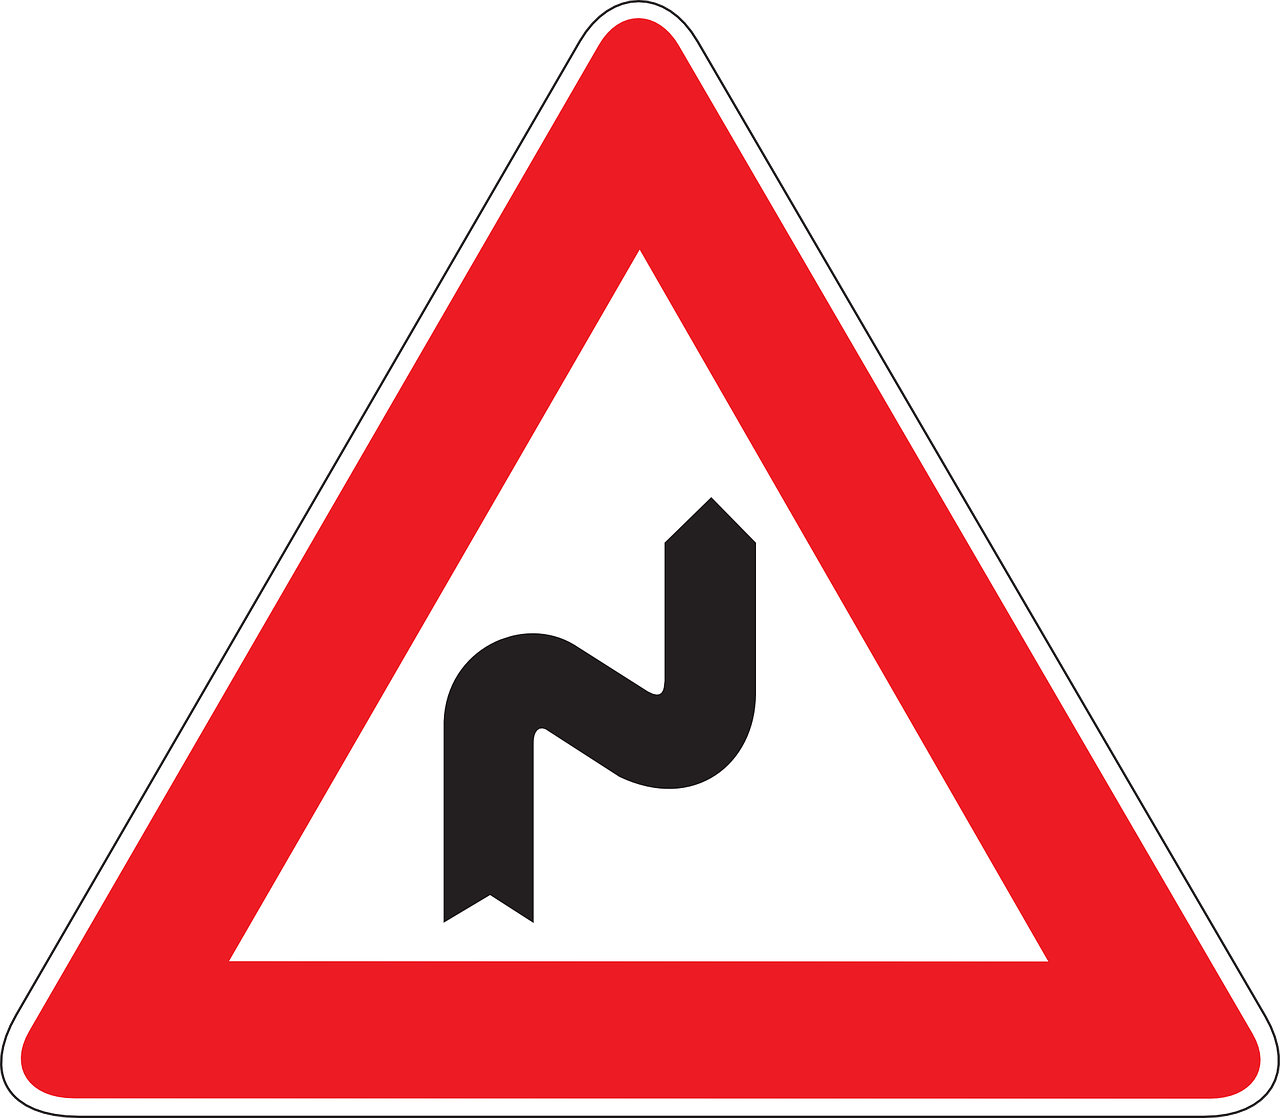 Bend in road sign